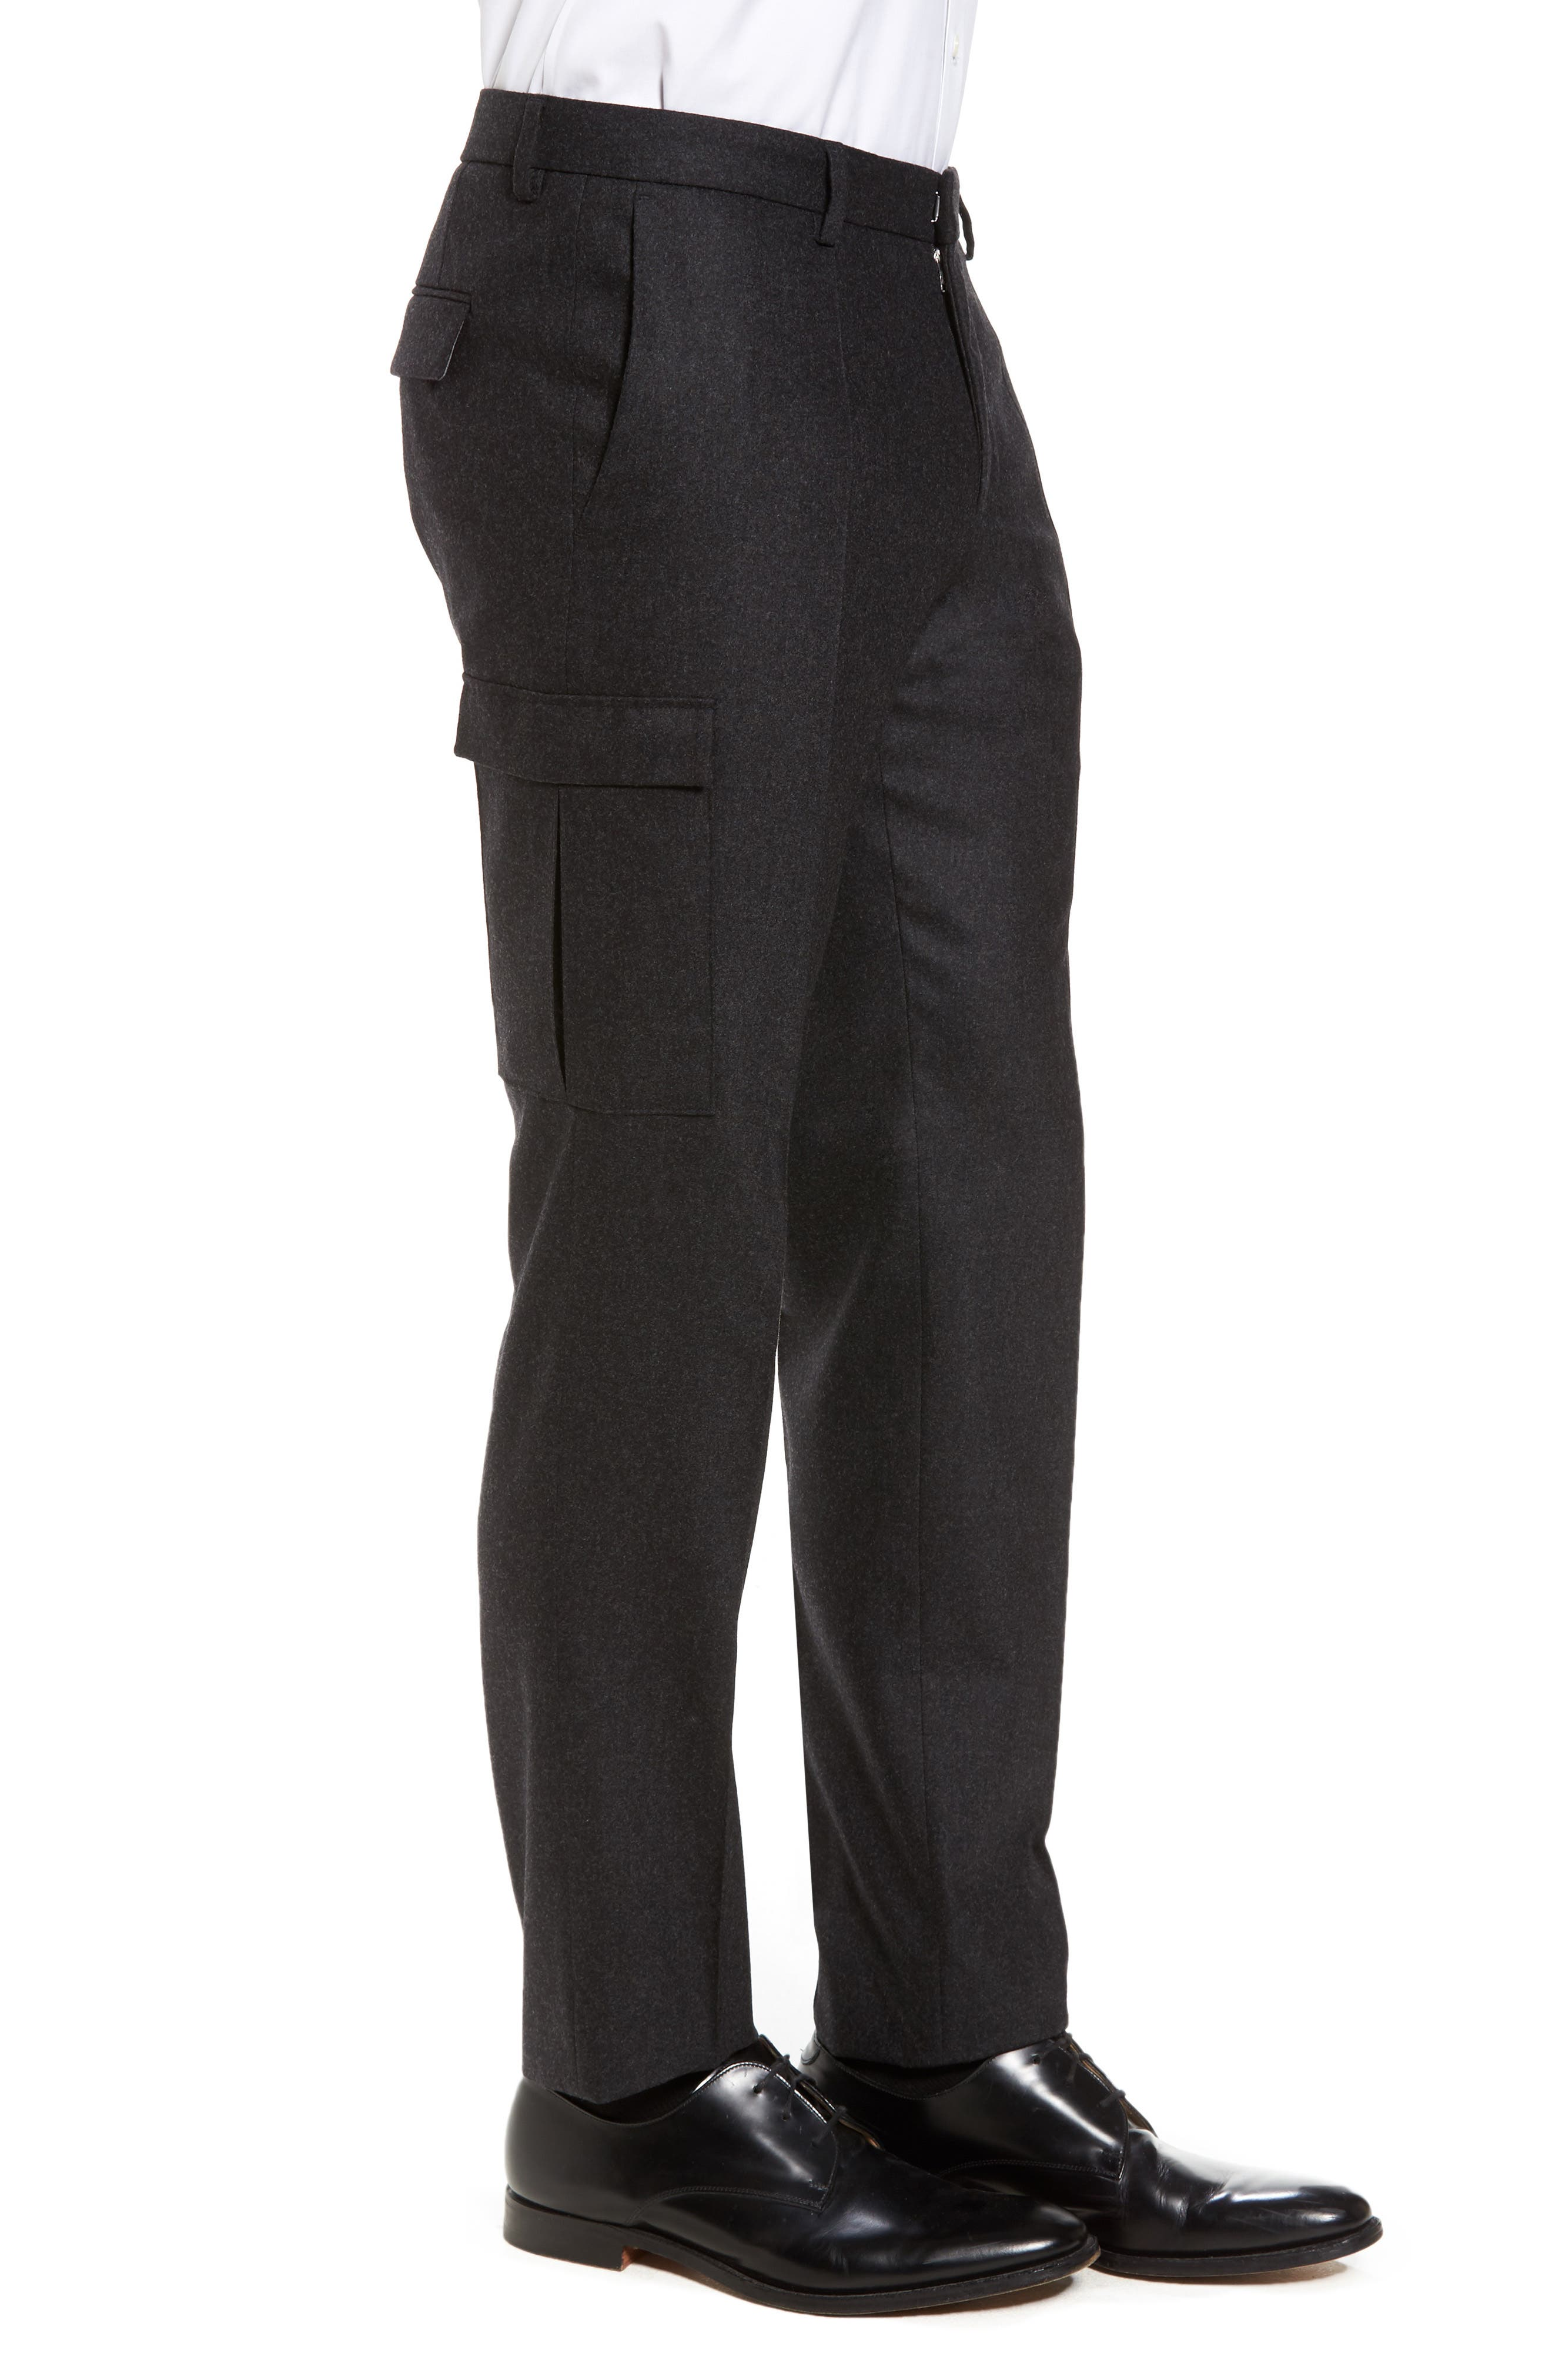 Balour Flat Front Stretch Solid Wool & Cashmere Cargo Trousers,                             Alternate thumbnail 4, color,